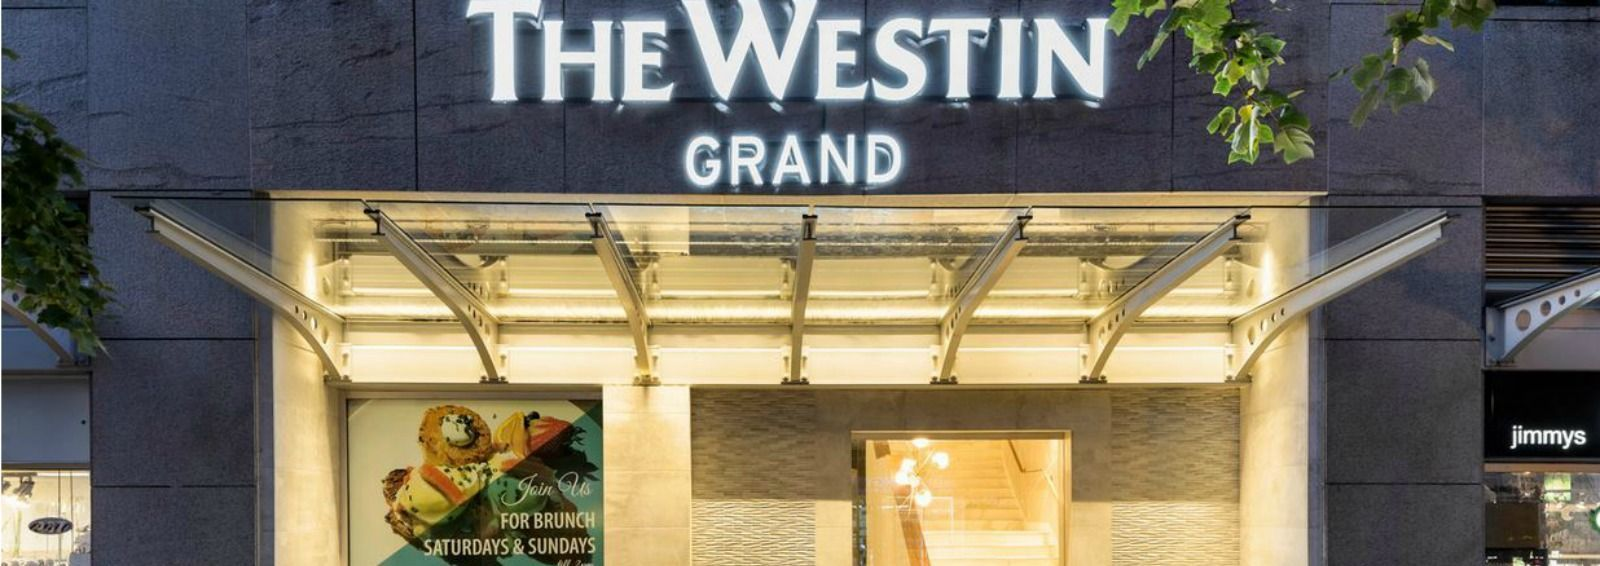 Robson Street entrance for The Westin Grand, Vancouver hotel